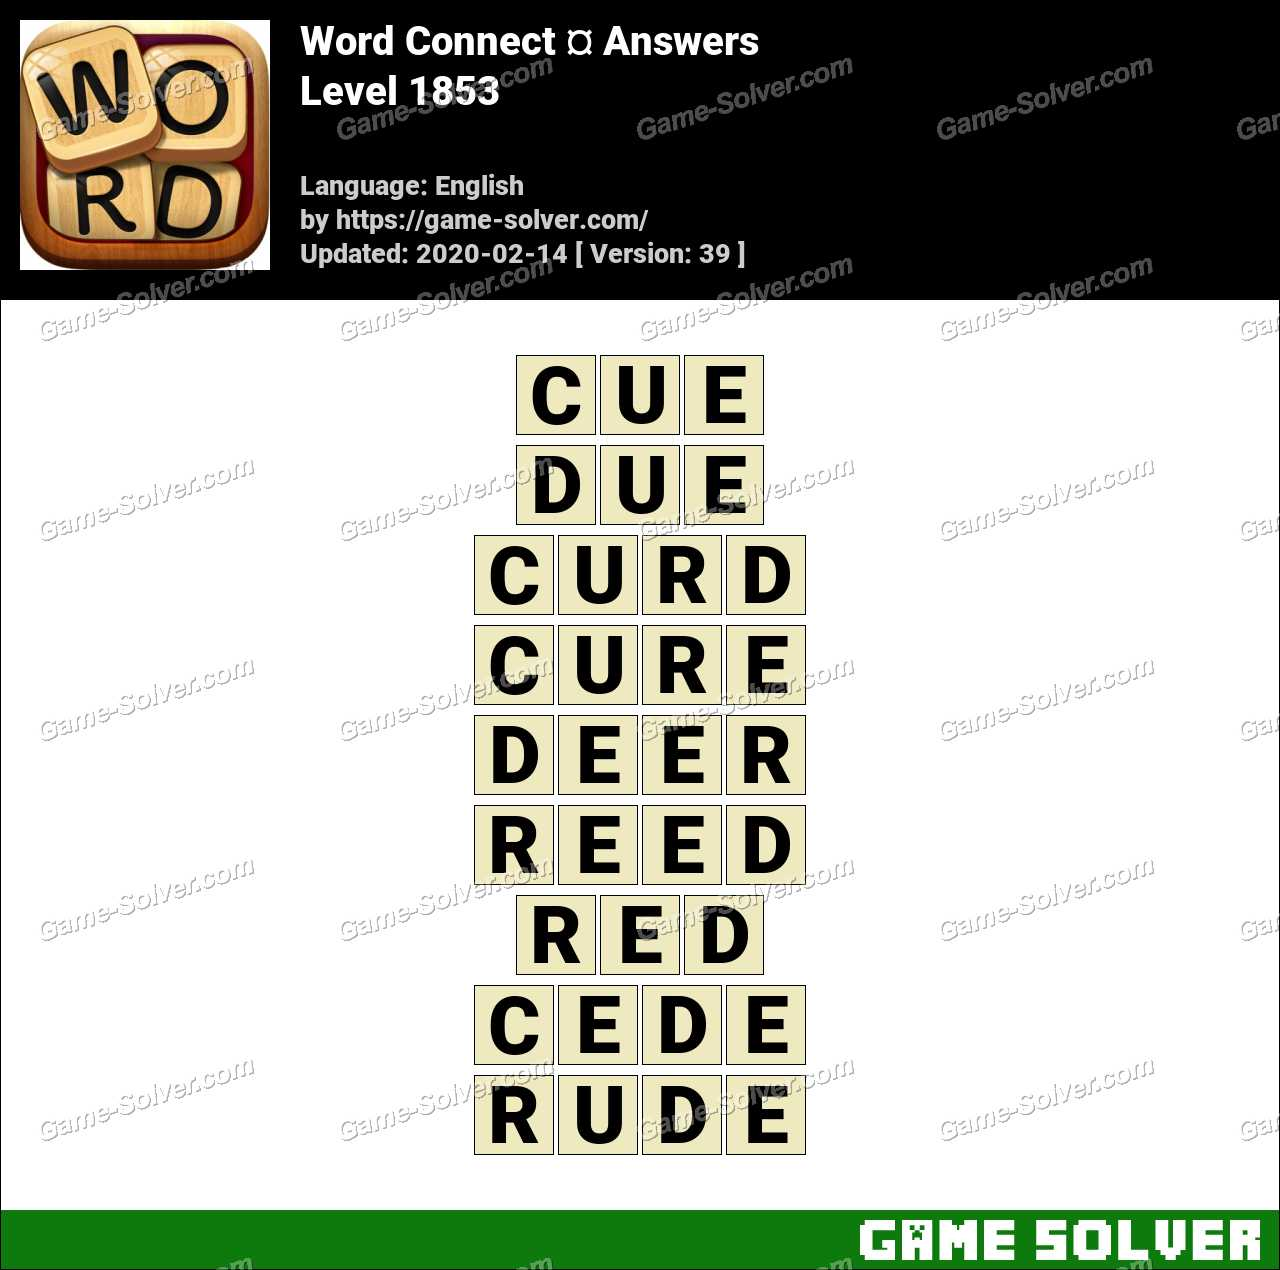 Word Connect Level 1853 Answers